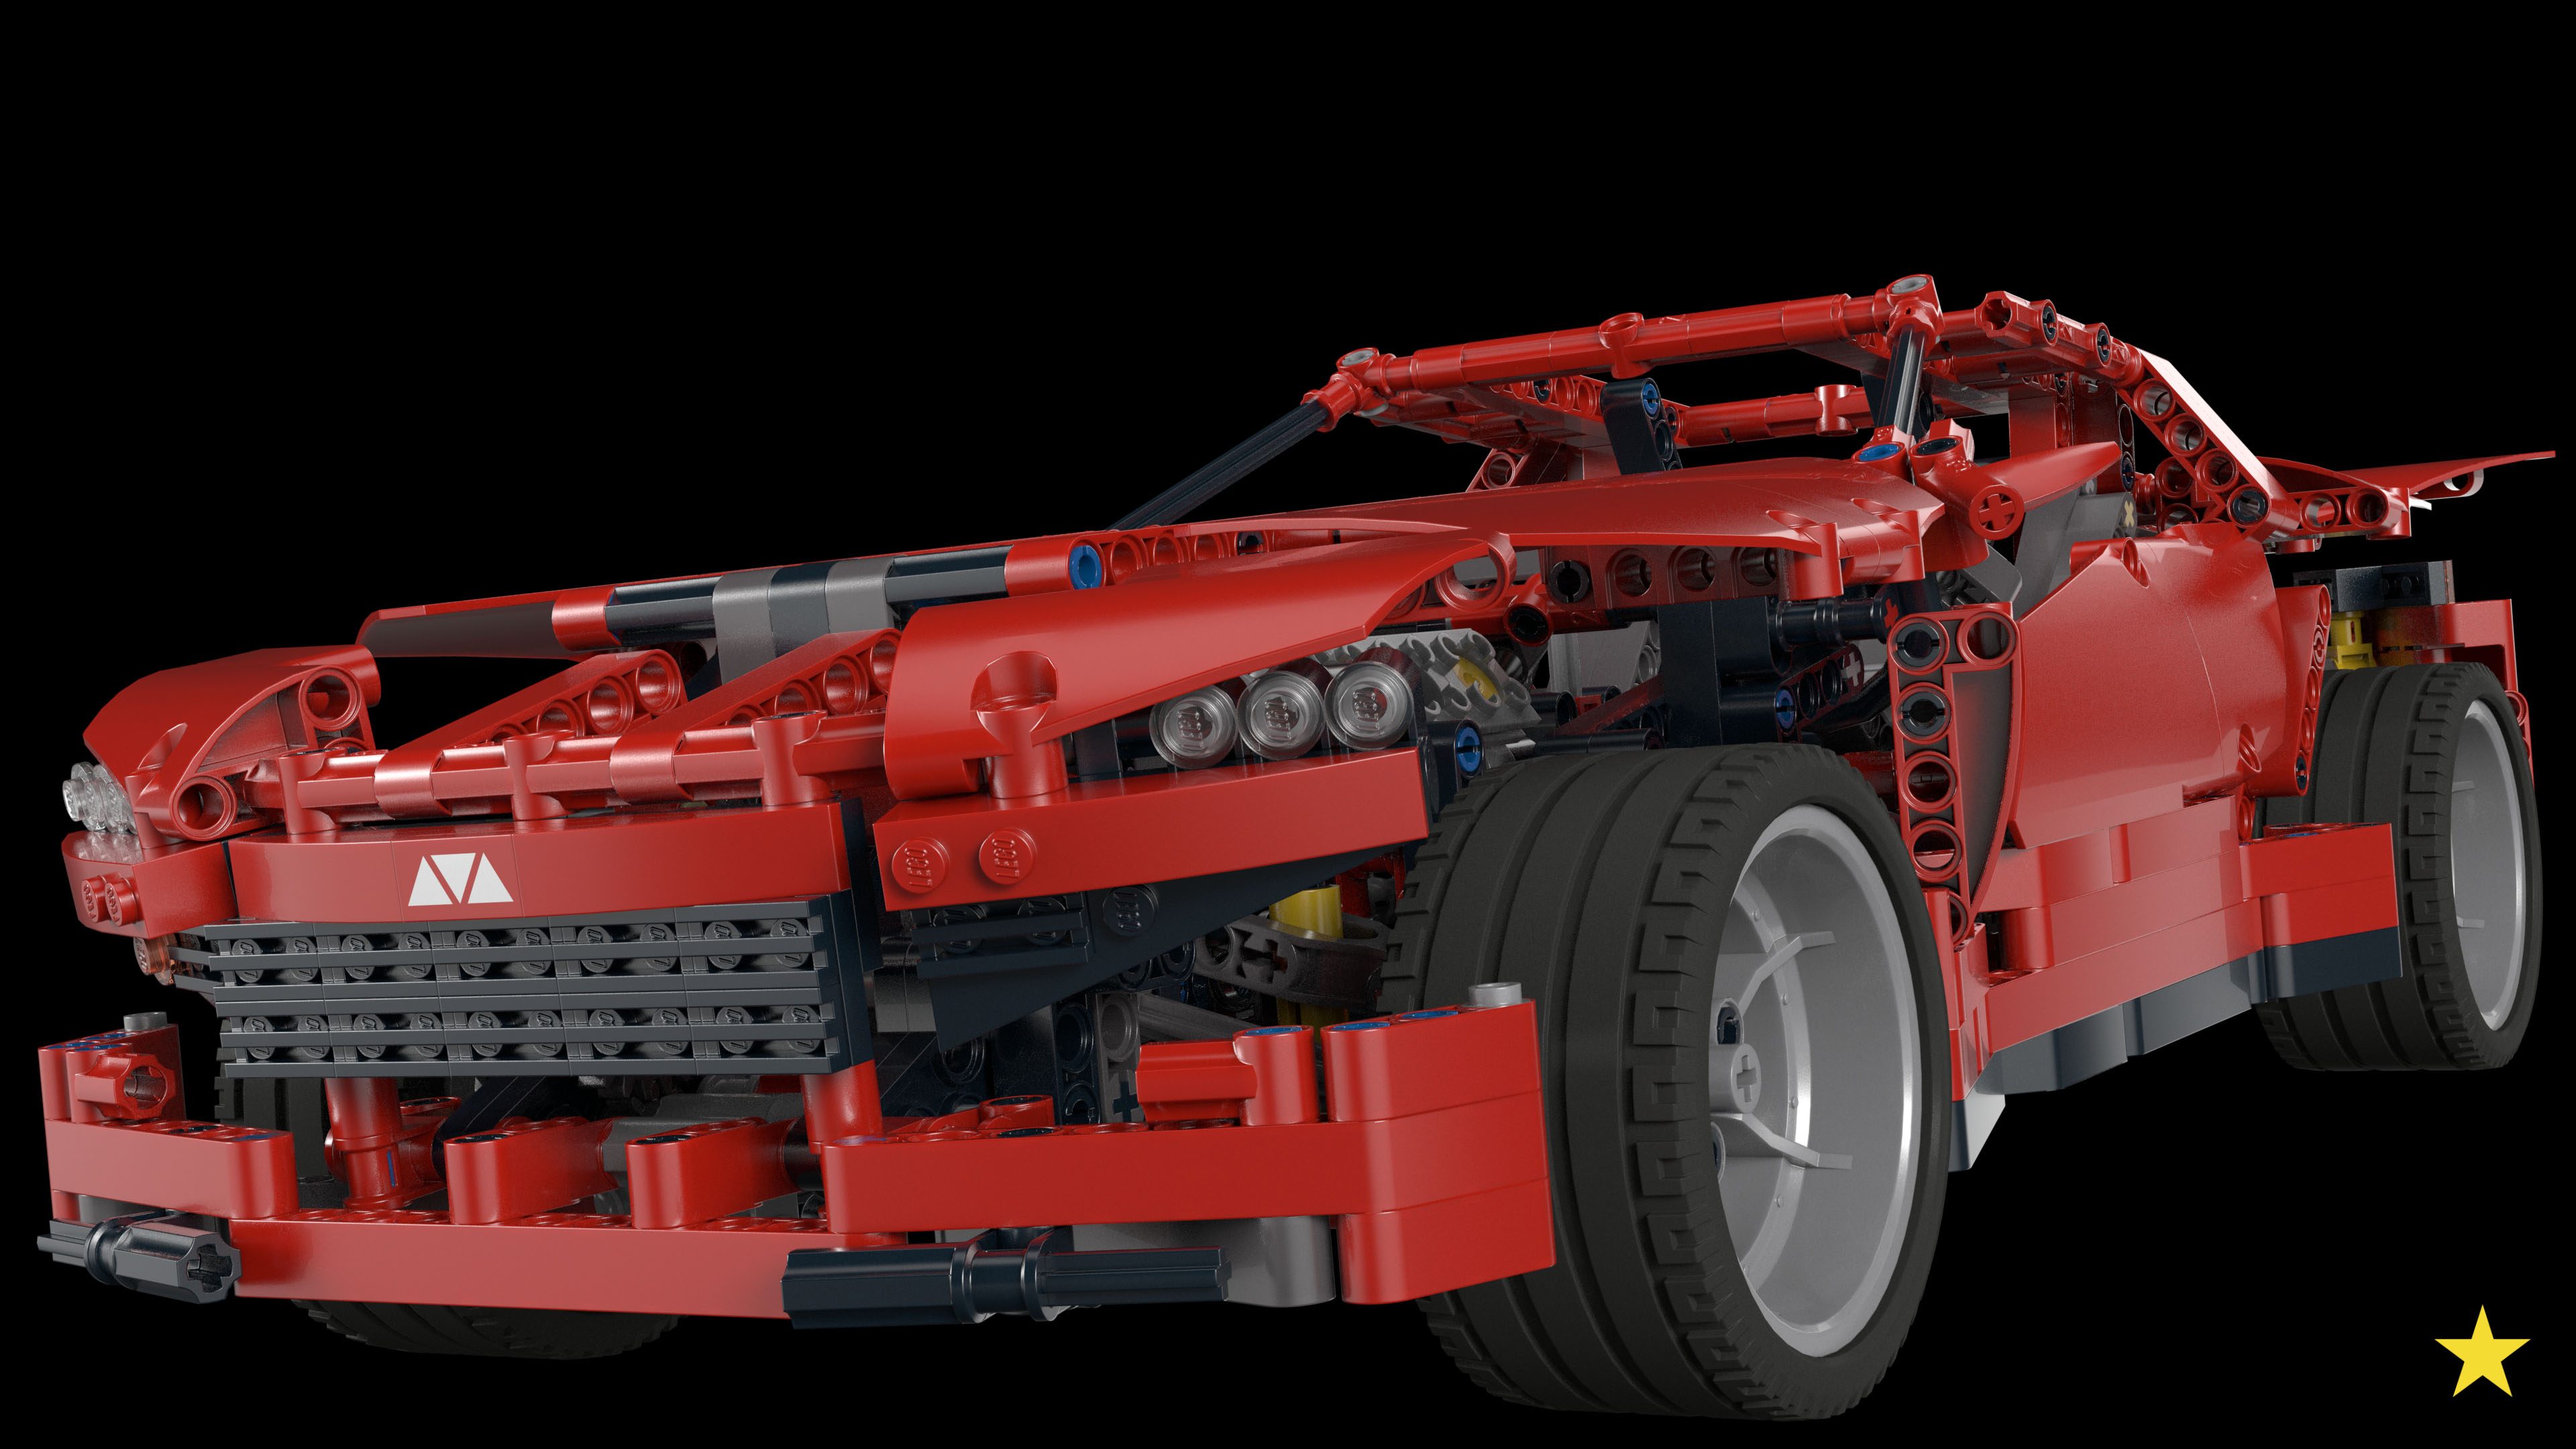 [Image: 8070_Technic_Car_v07c_4K.jpg]